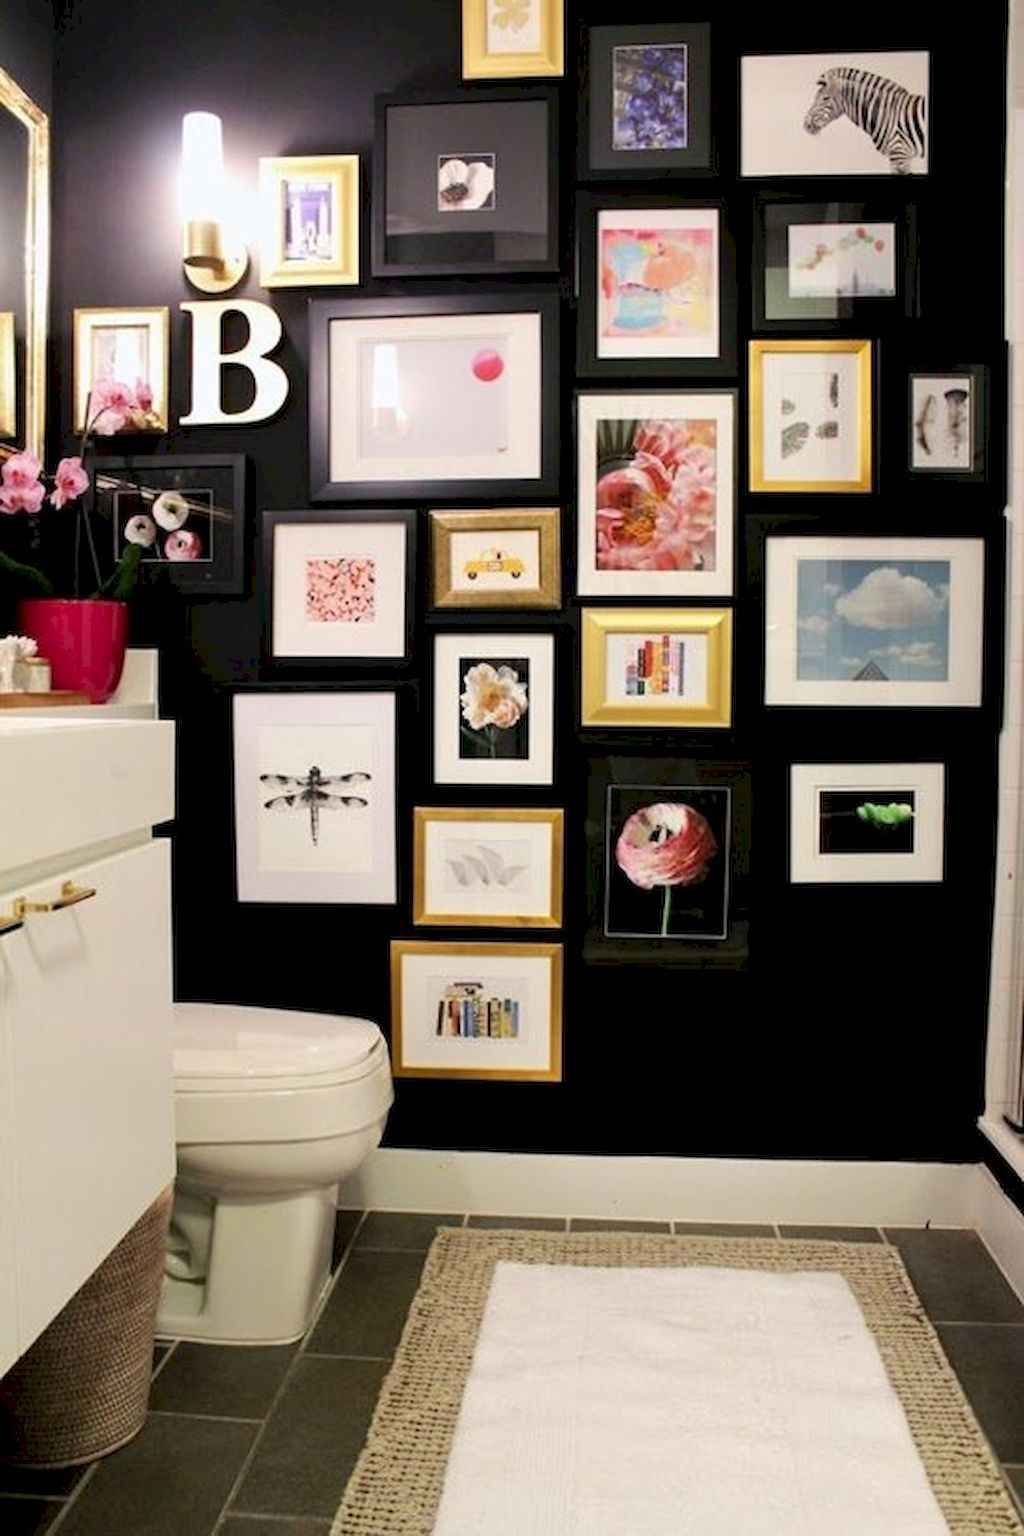 Couples first apartment decorating ideas (54)